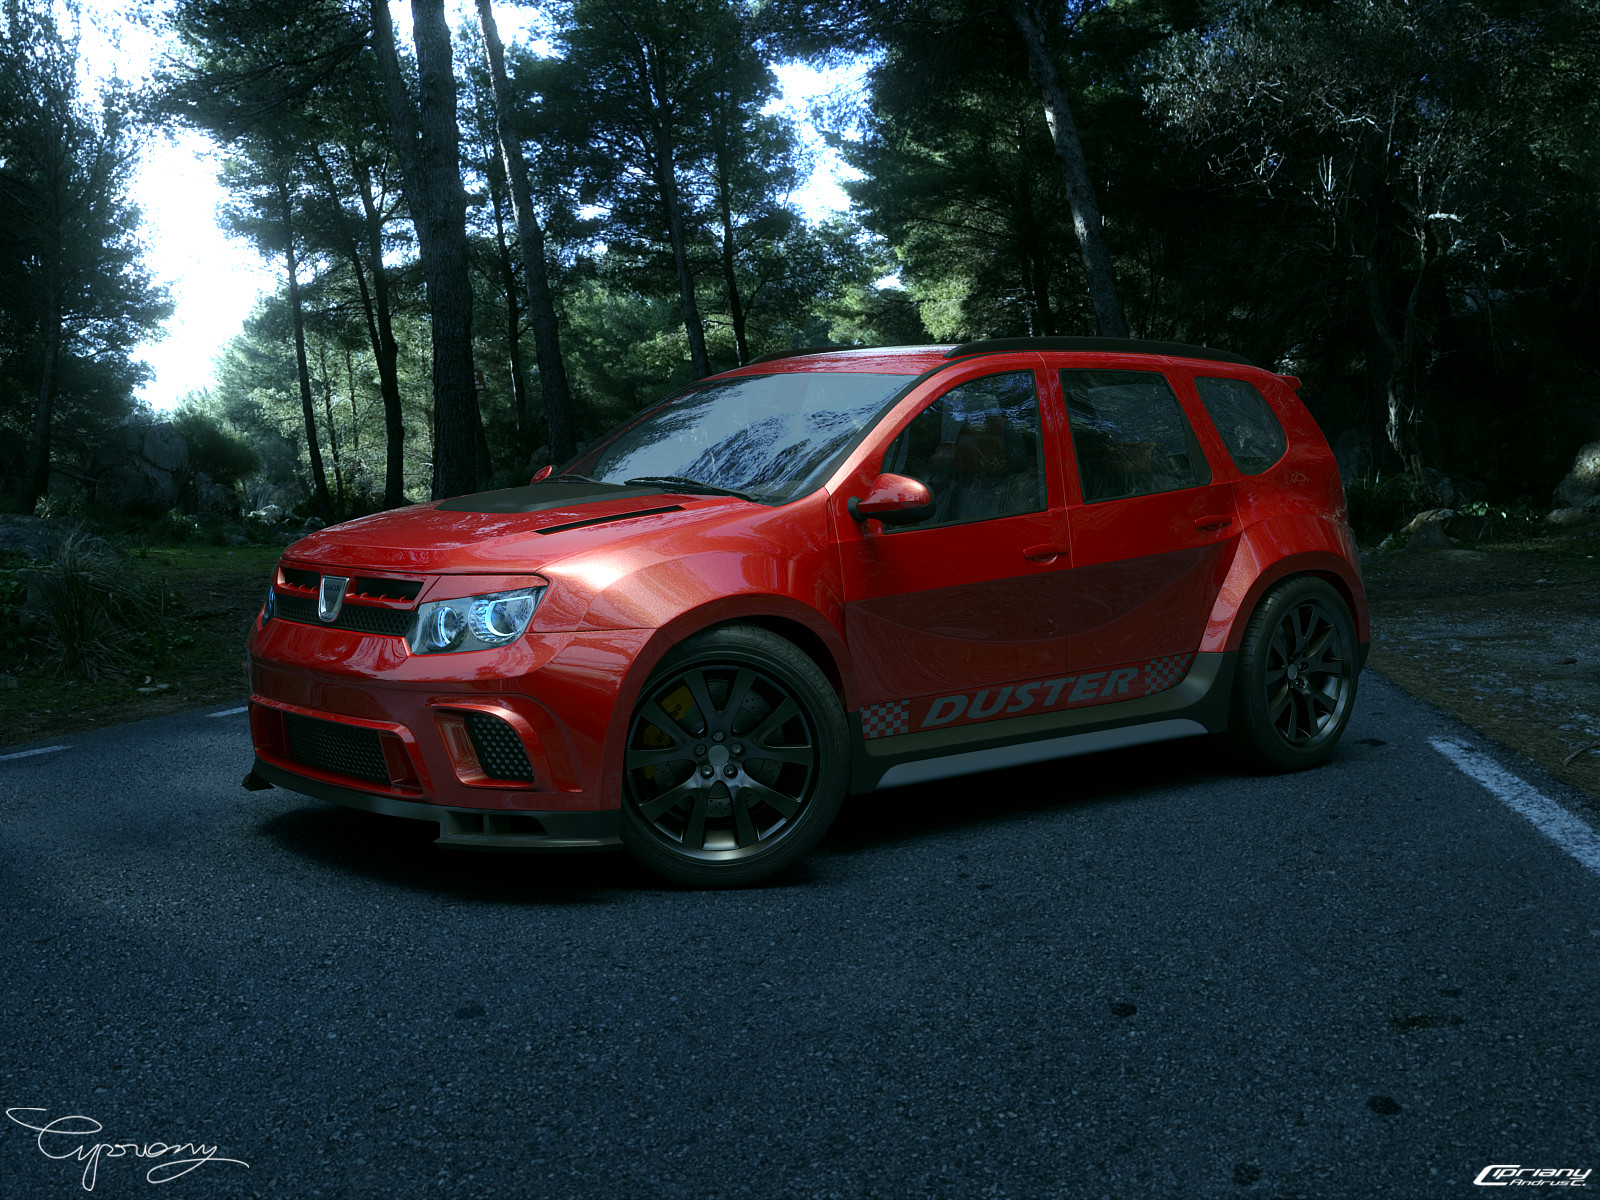 dacia duster tuning 20 by cipriany on deviantart. Black Bedroom Furniture Sets. Home Design Ideas